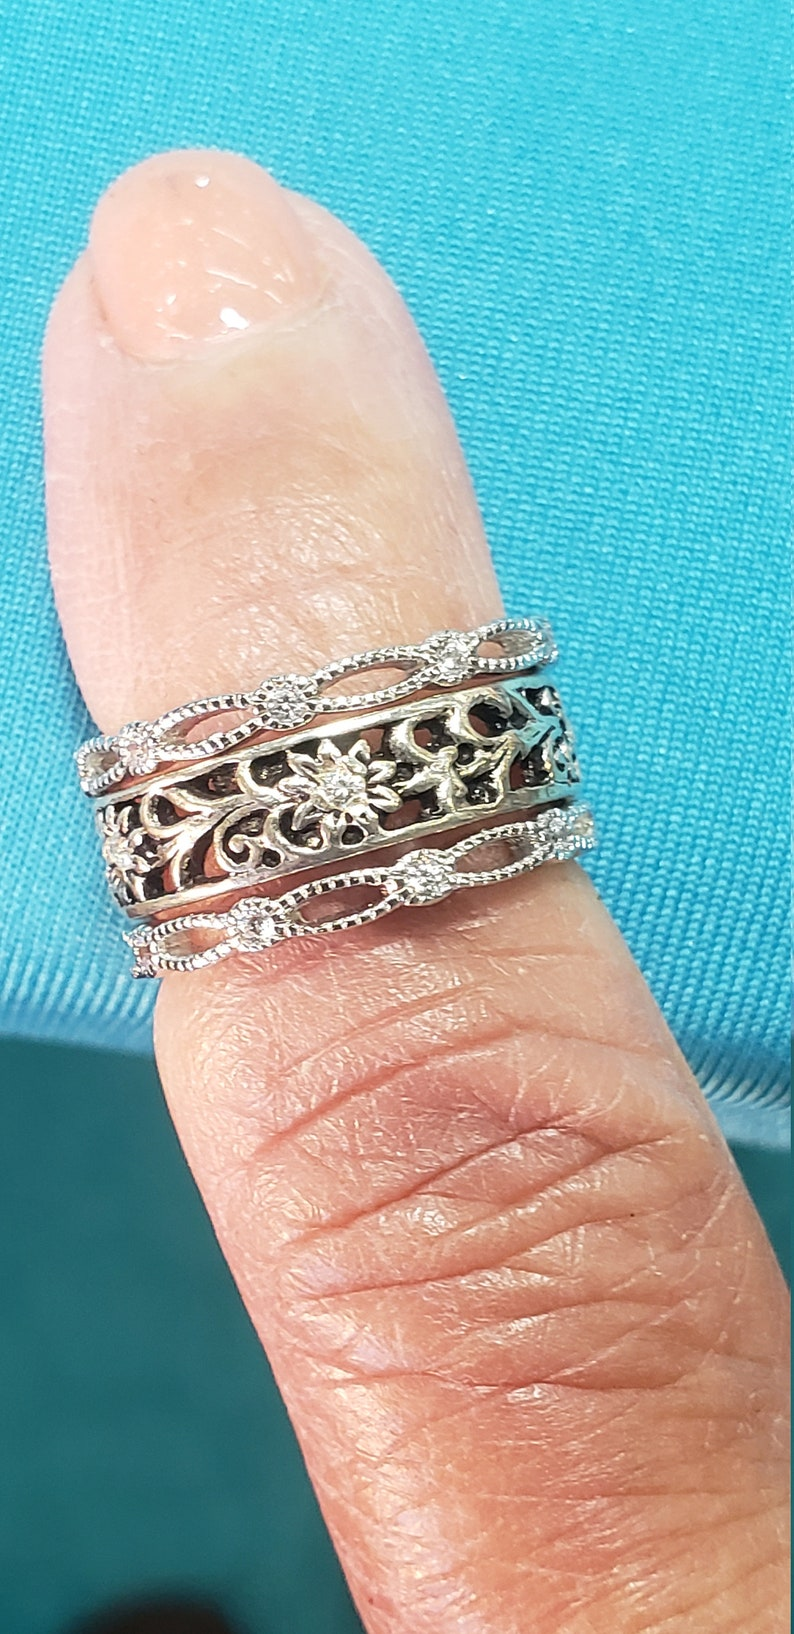 toe rings custom fitted toe rings sterling silver CZ fitted toe ring stack able stacked toe rings  toe jewelry body jewelry jewelry for toes